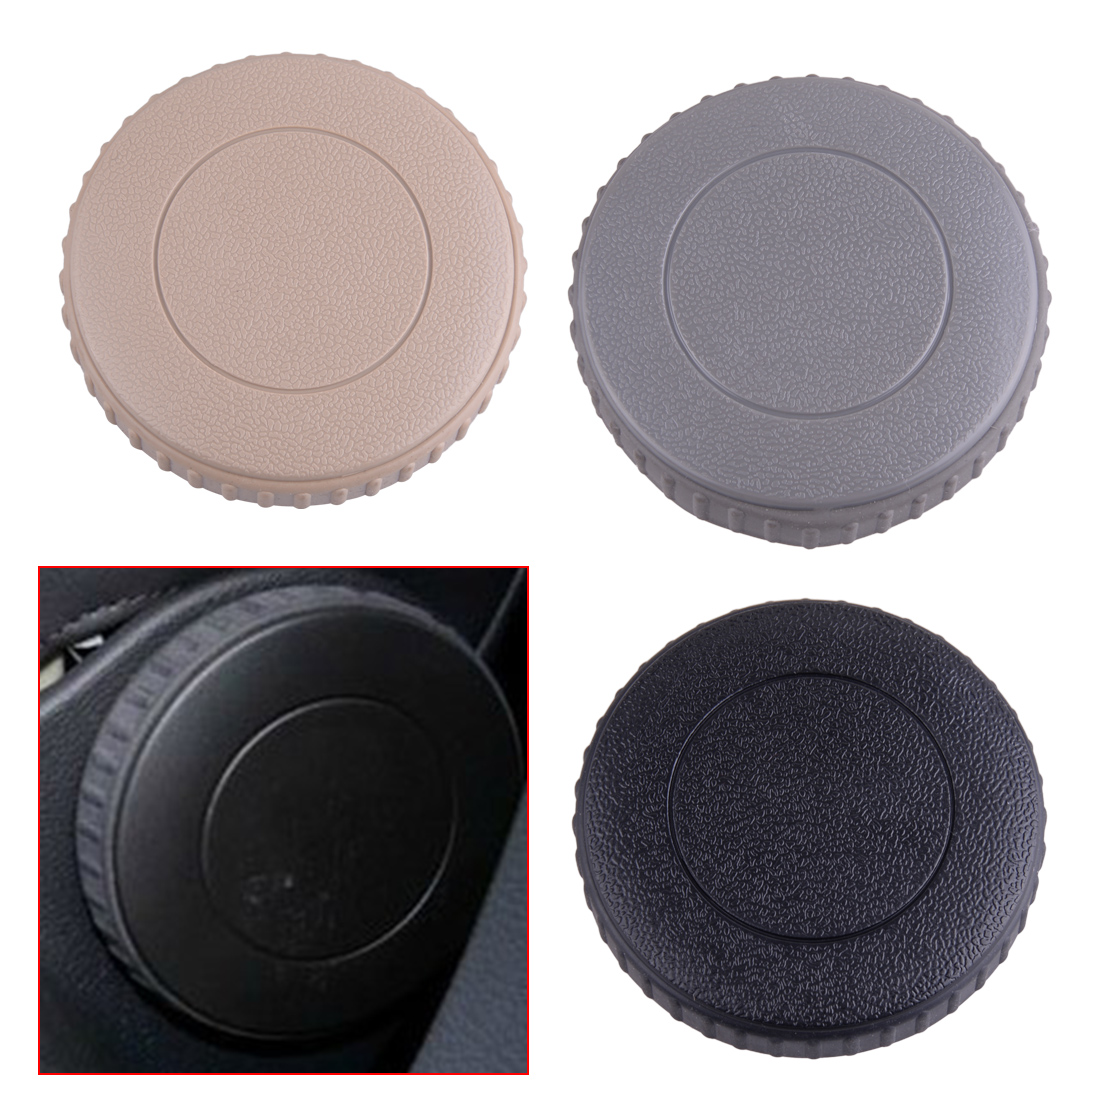 CITALL Black/Beige/Grey Front Seat Recline Knob Adjust Handle 1J0 881 671 H Fit For VW Rabbit Jetta MK5 Golf MK6 Rabbit